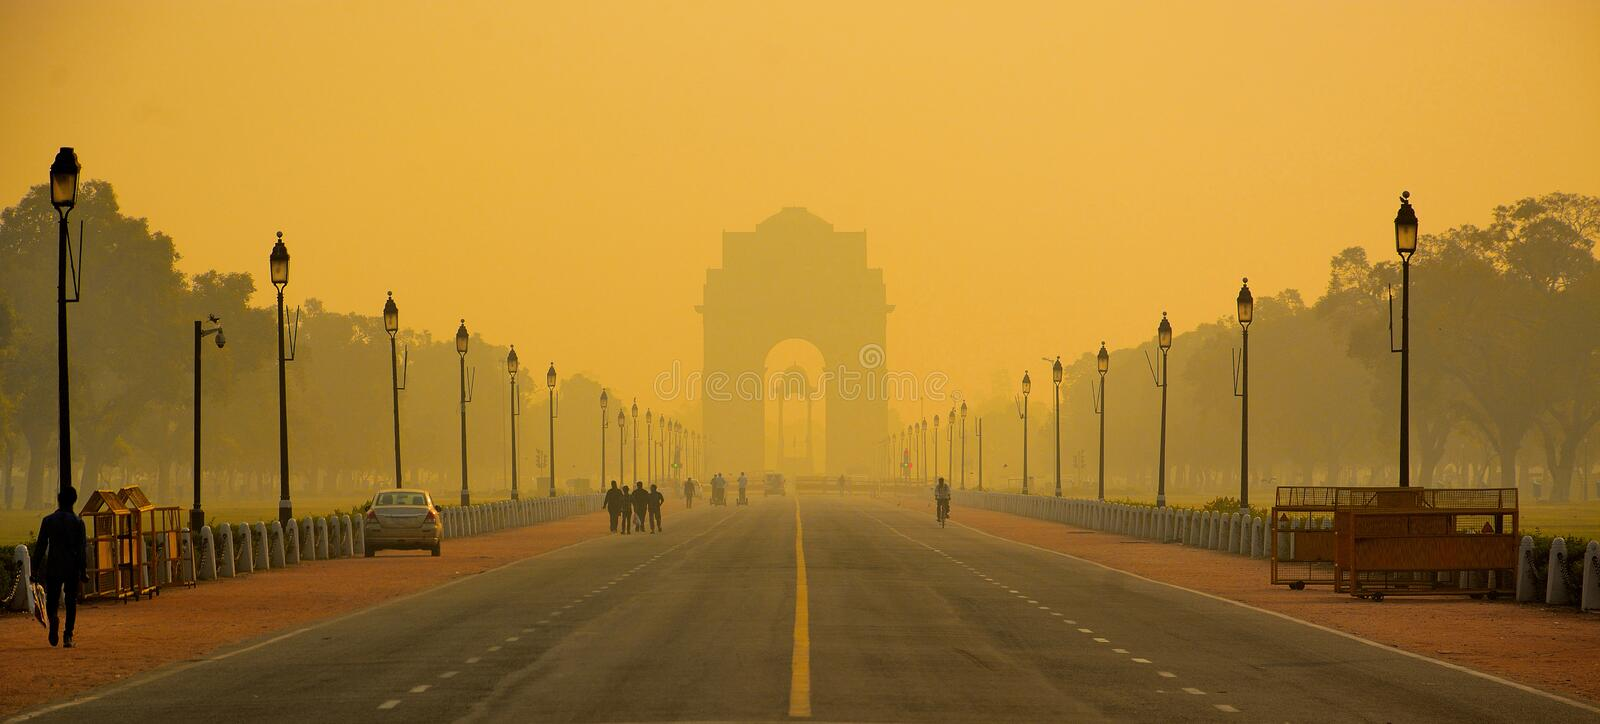 India Gate, New Delhi,INDIA stock image